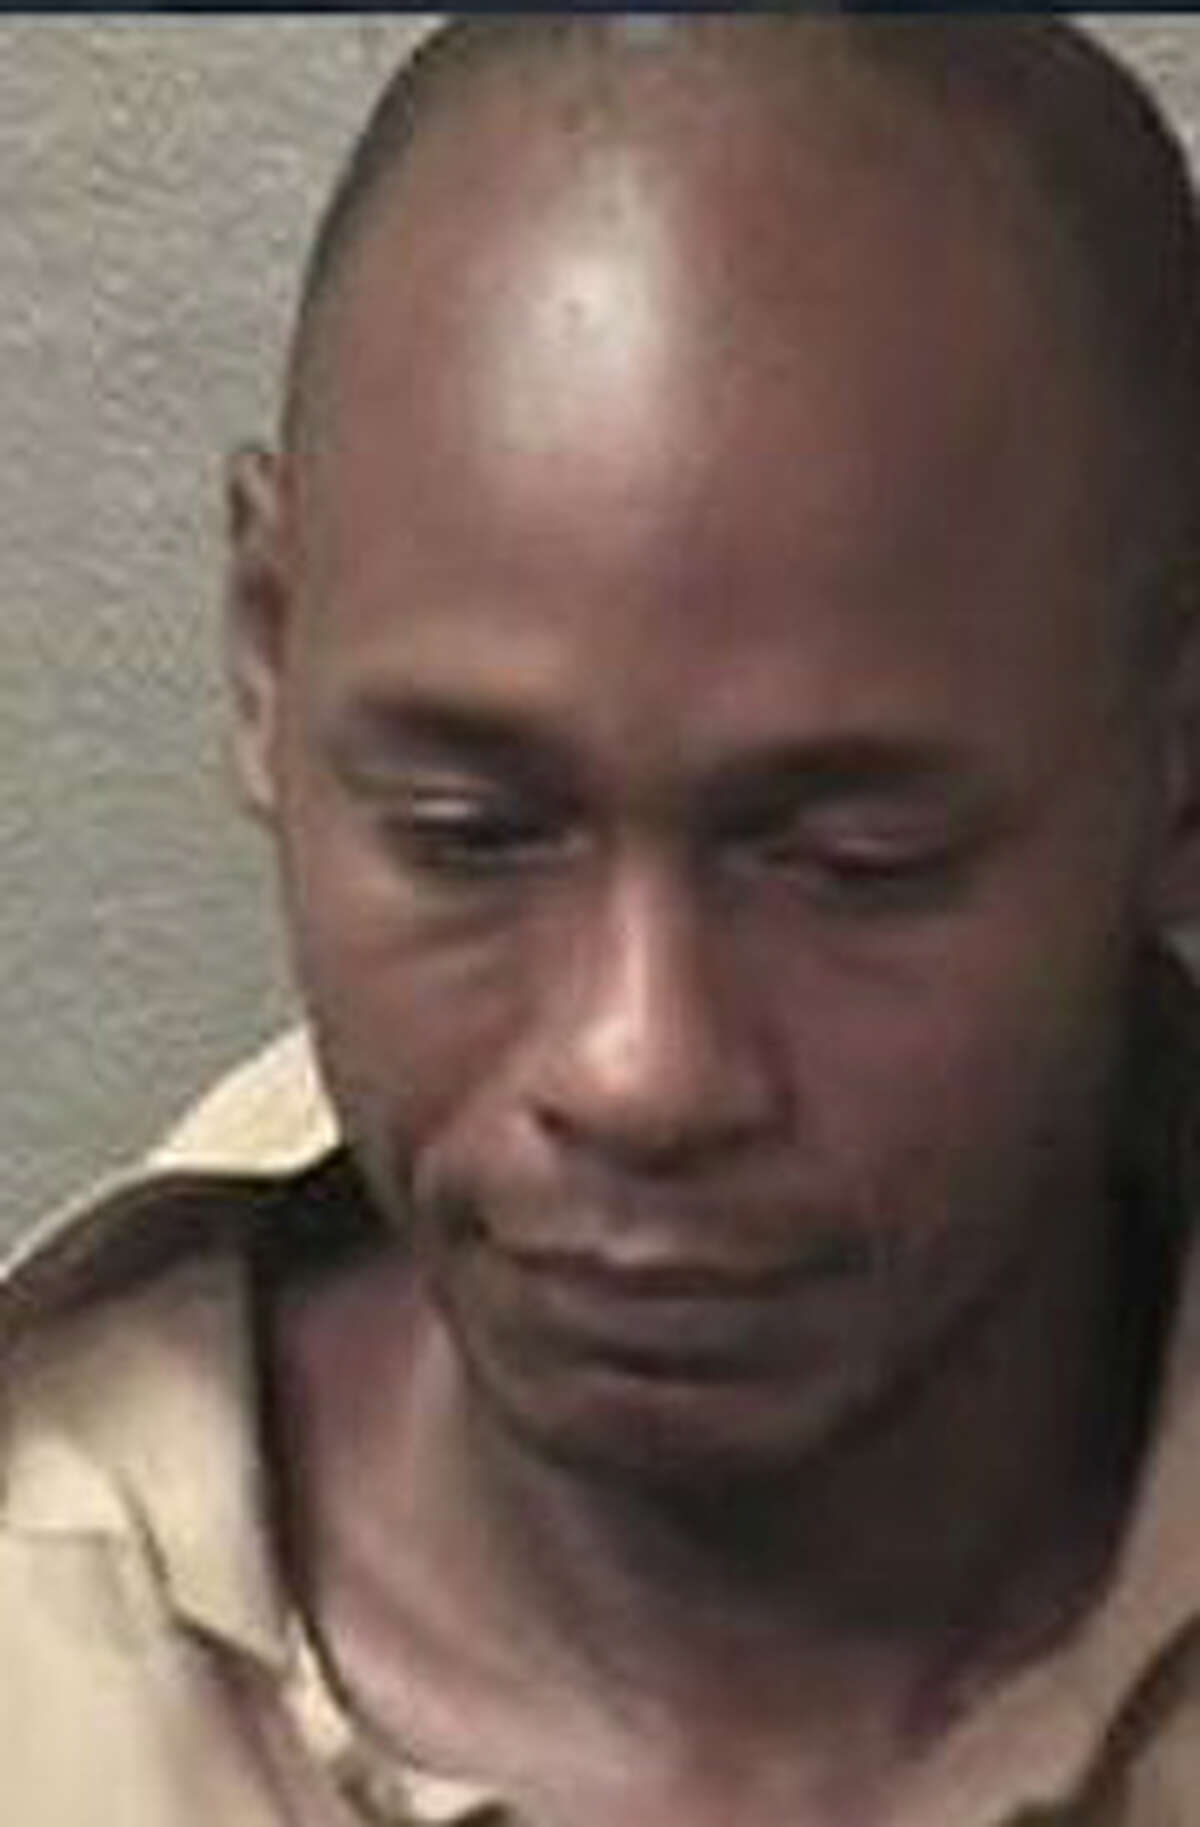 Cavalas Prater, 35, was taken into custody for the murder of Su-Jung Teng, 79